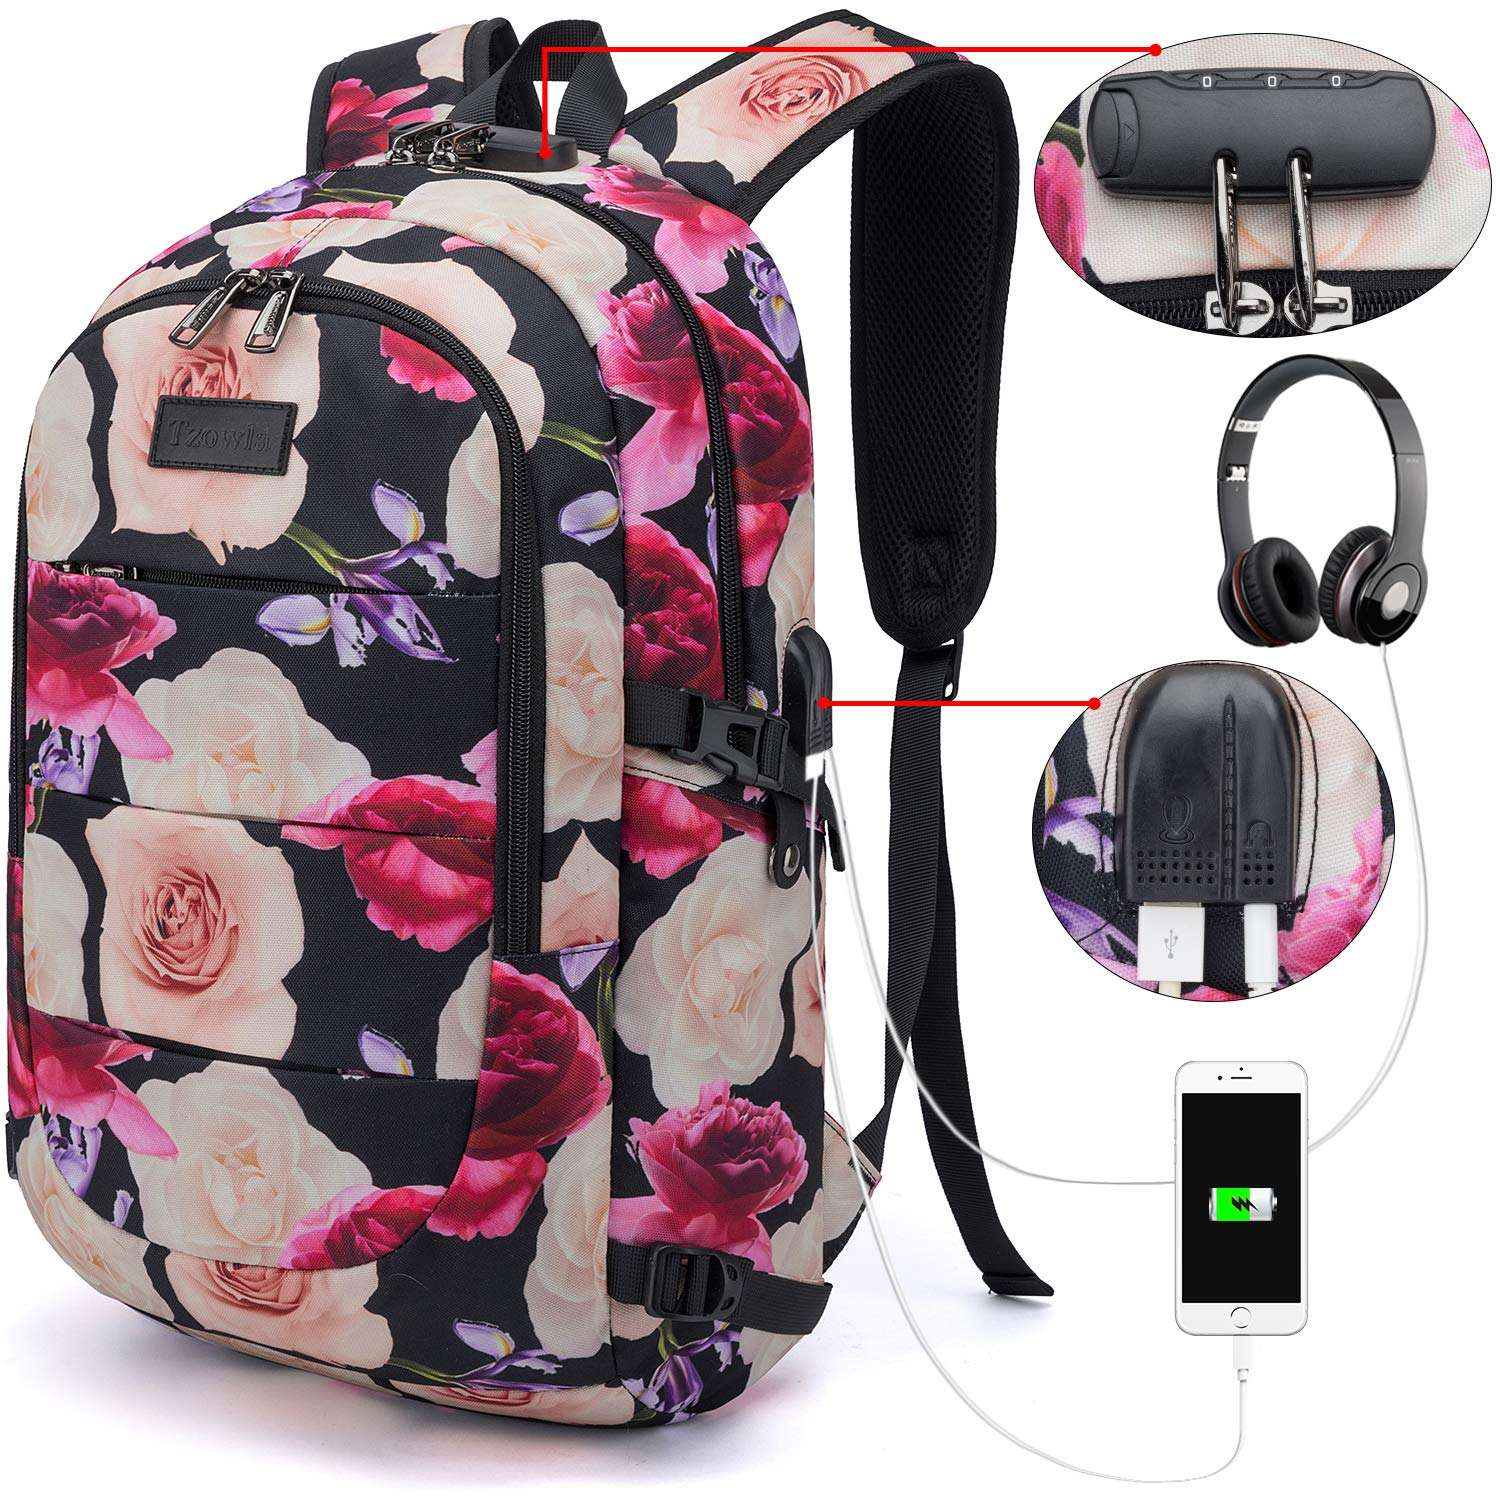 Tzowla Business Laptop Backpack Water Resistant Anti-Theft College Backpack with USB Charging Port and Lock 15.6 Inch Computer Backpacks for Women Girls, Casual Hiking Travel Daypack (Flower) by Tzowla